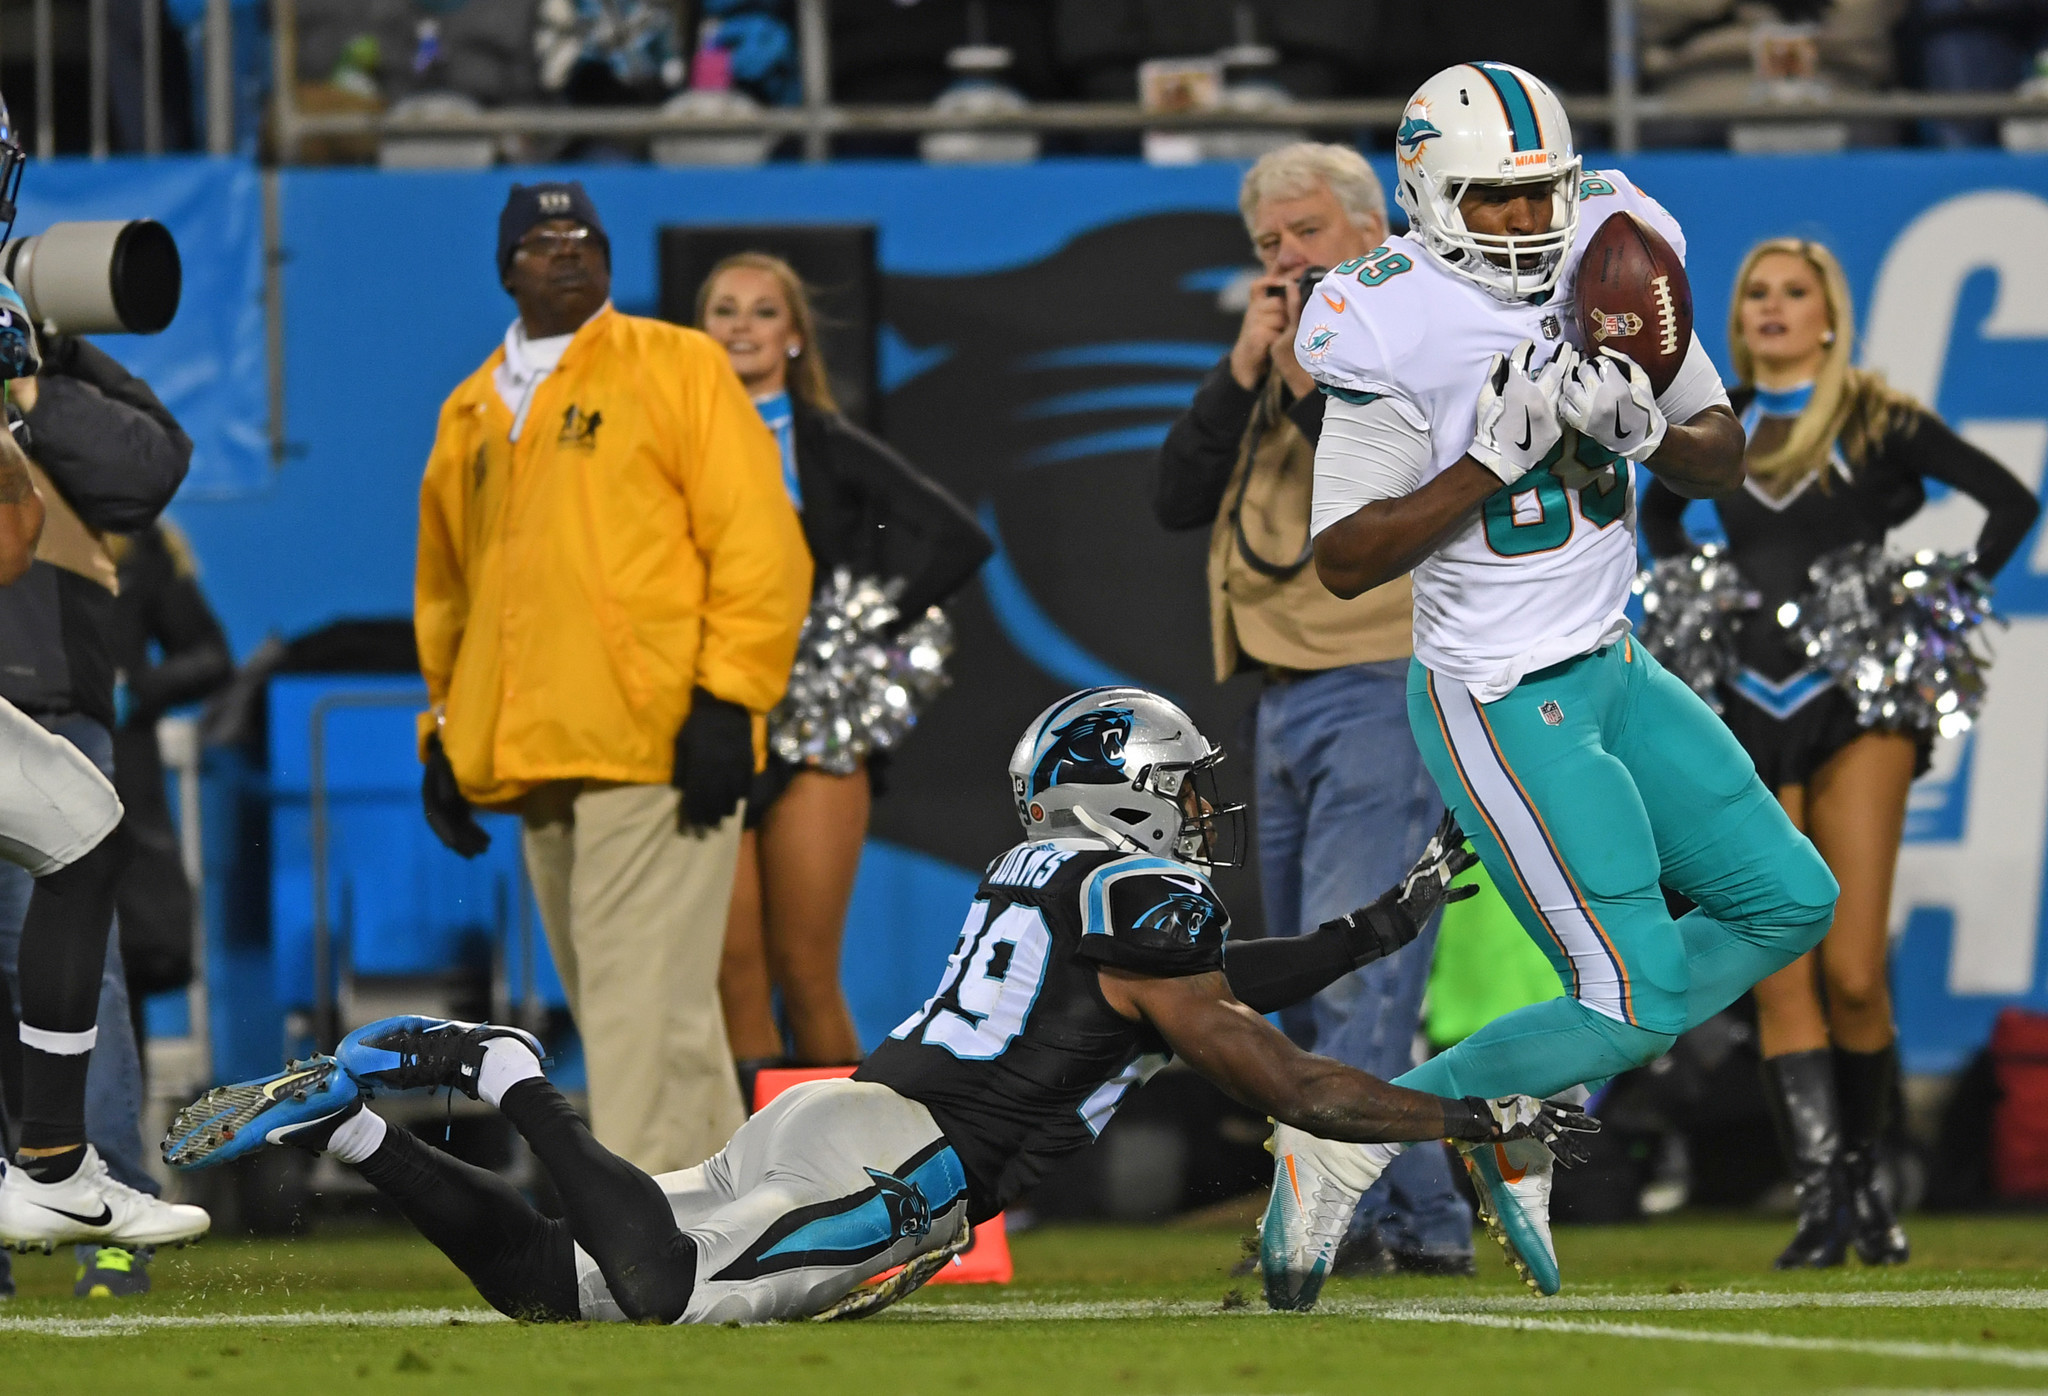 Sfl-dolphins-kelly-position-needs-asf-20180207